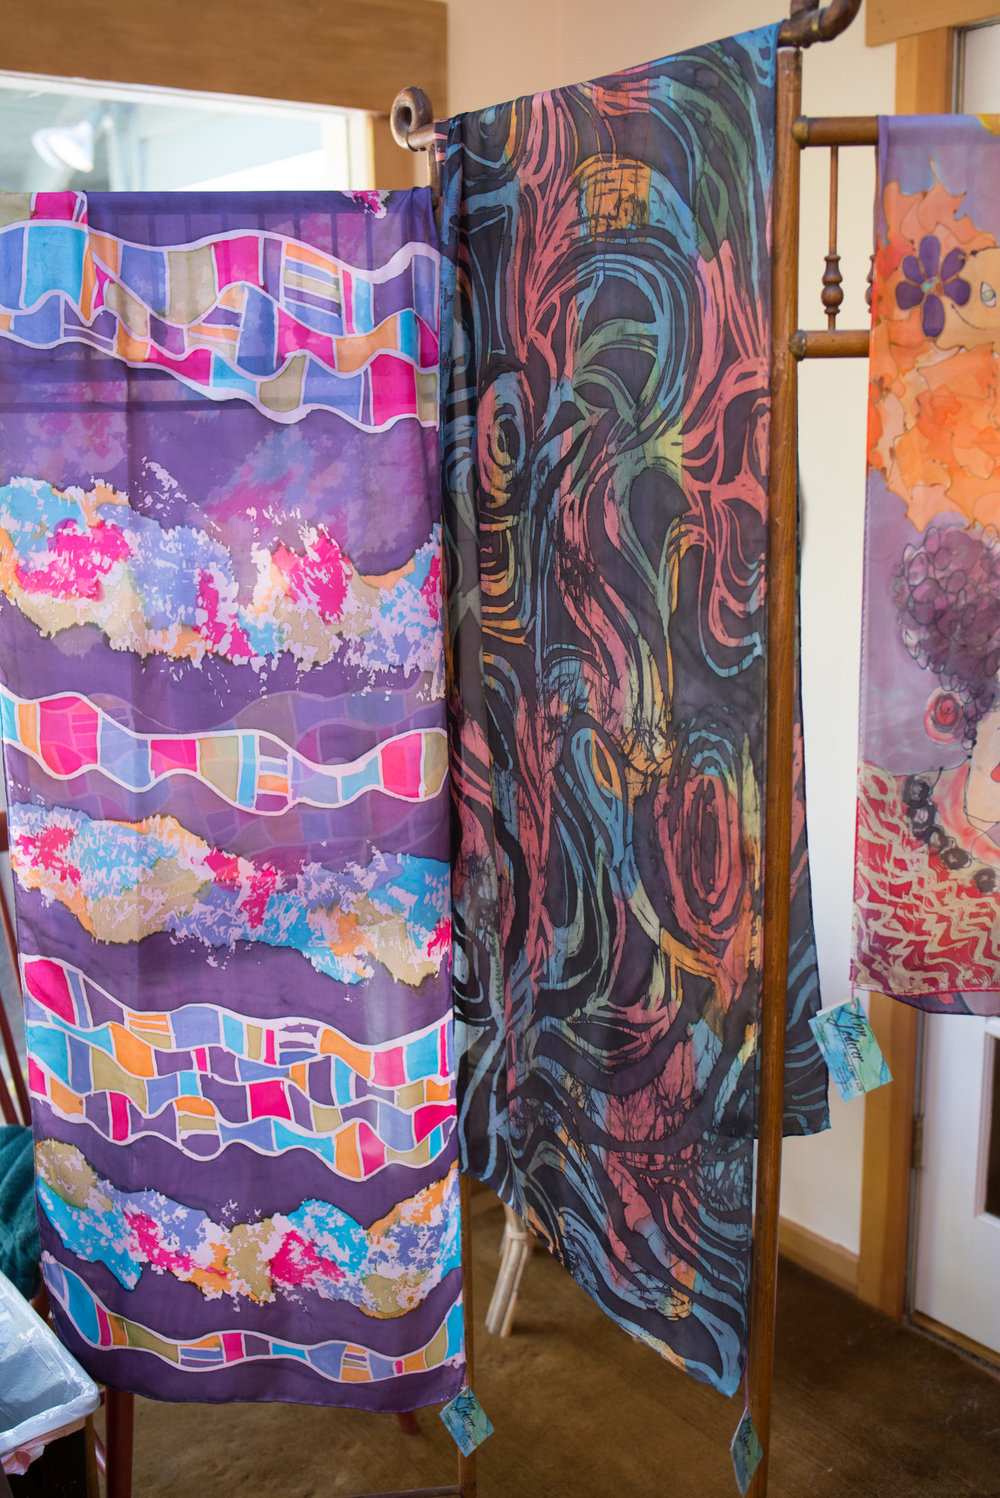 More captivating hand-painted silk scarves by Ann Lederer greeted guests upon entering her space...